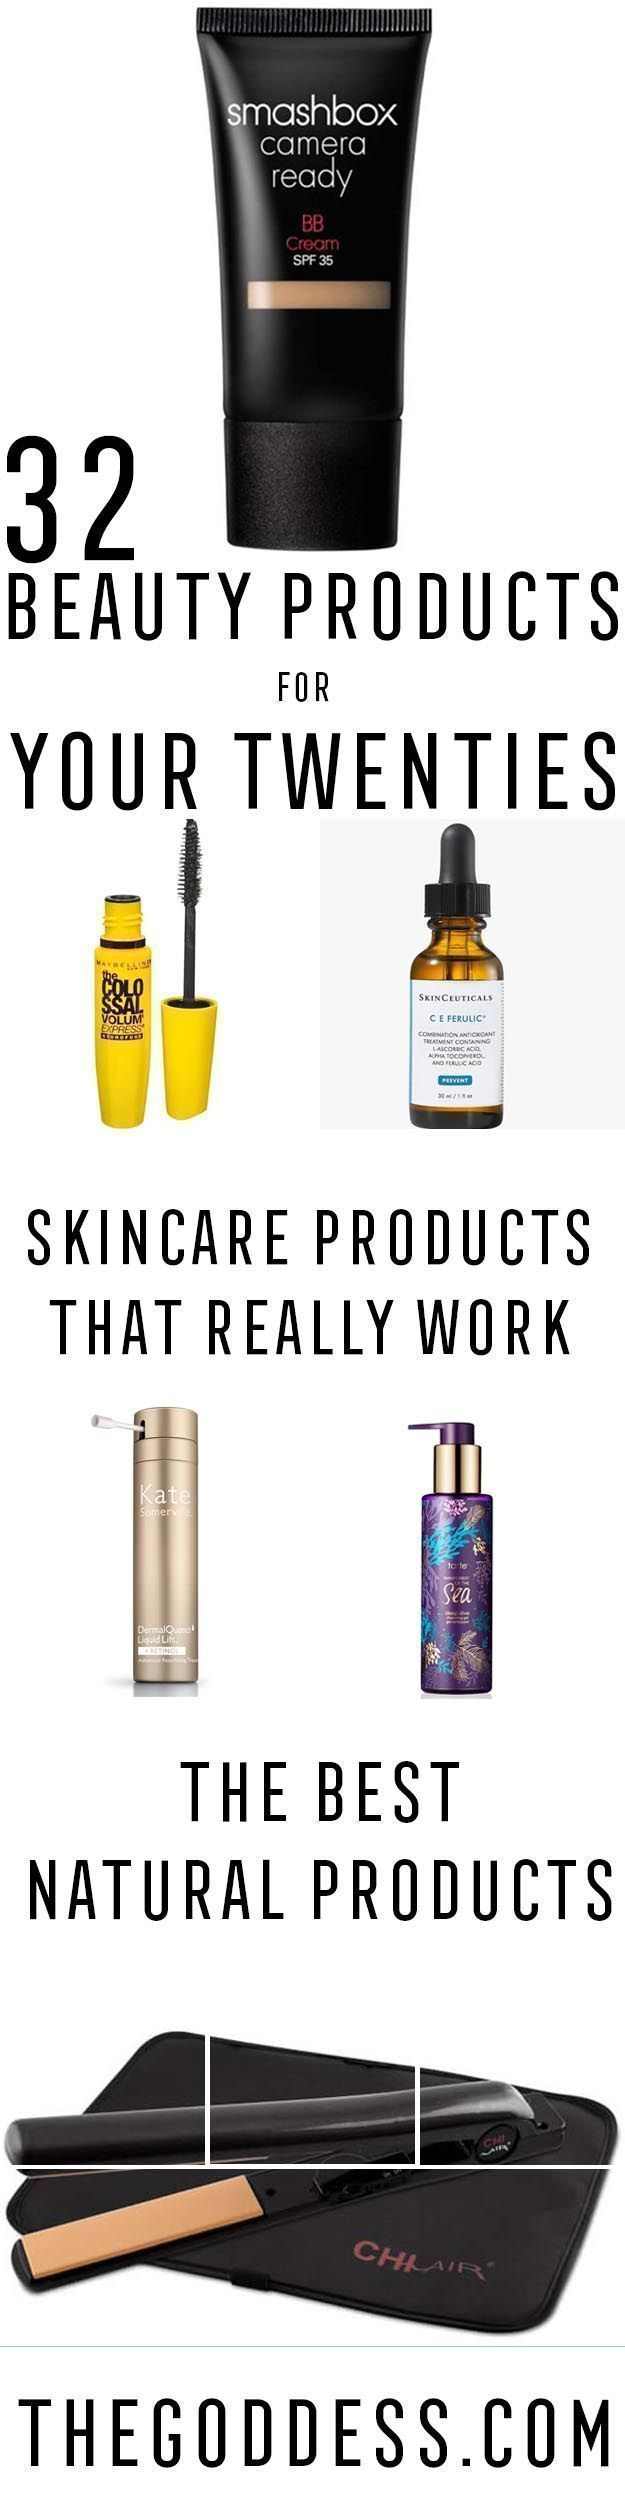 Best Beauty Products For Your 20s - Best Skin-Care Routine For Your 20s and The Best Skin-Care Regimens And Beauty Products You Need To Use In Your 20s. Anti Aging Routines and Exactly How To Take Care Of Your Skin In Your Twenties. We Cover Dermatologist Recommended Skin Care Routines And The Best Eye Creams For Your Early 20s. https://thegoddess.com/beauty-products-for-your-20s #antiagingcreamsforoilyskin #beautycreamsproducts #eyecreamsfor20s #skincareroutine